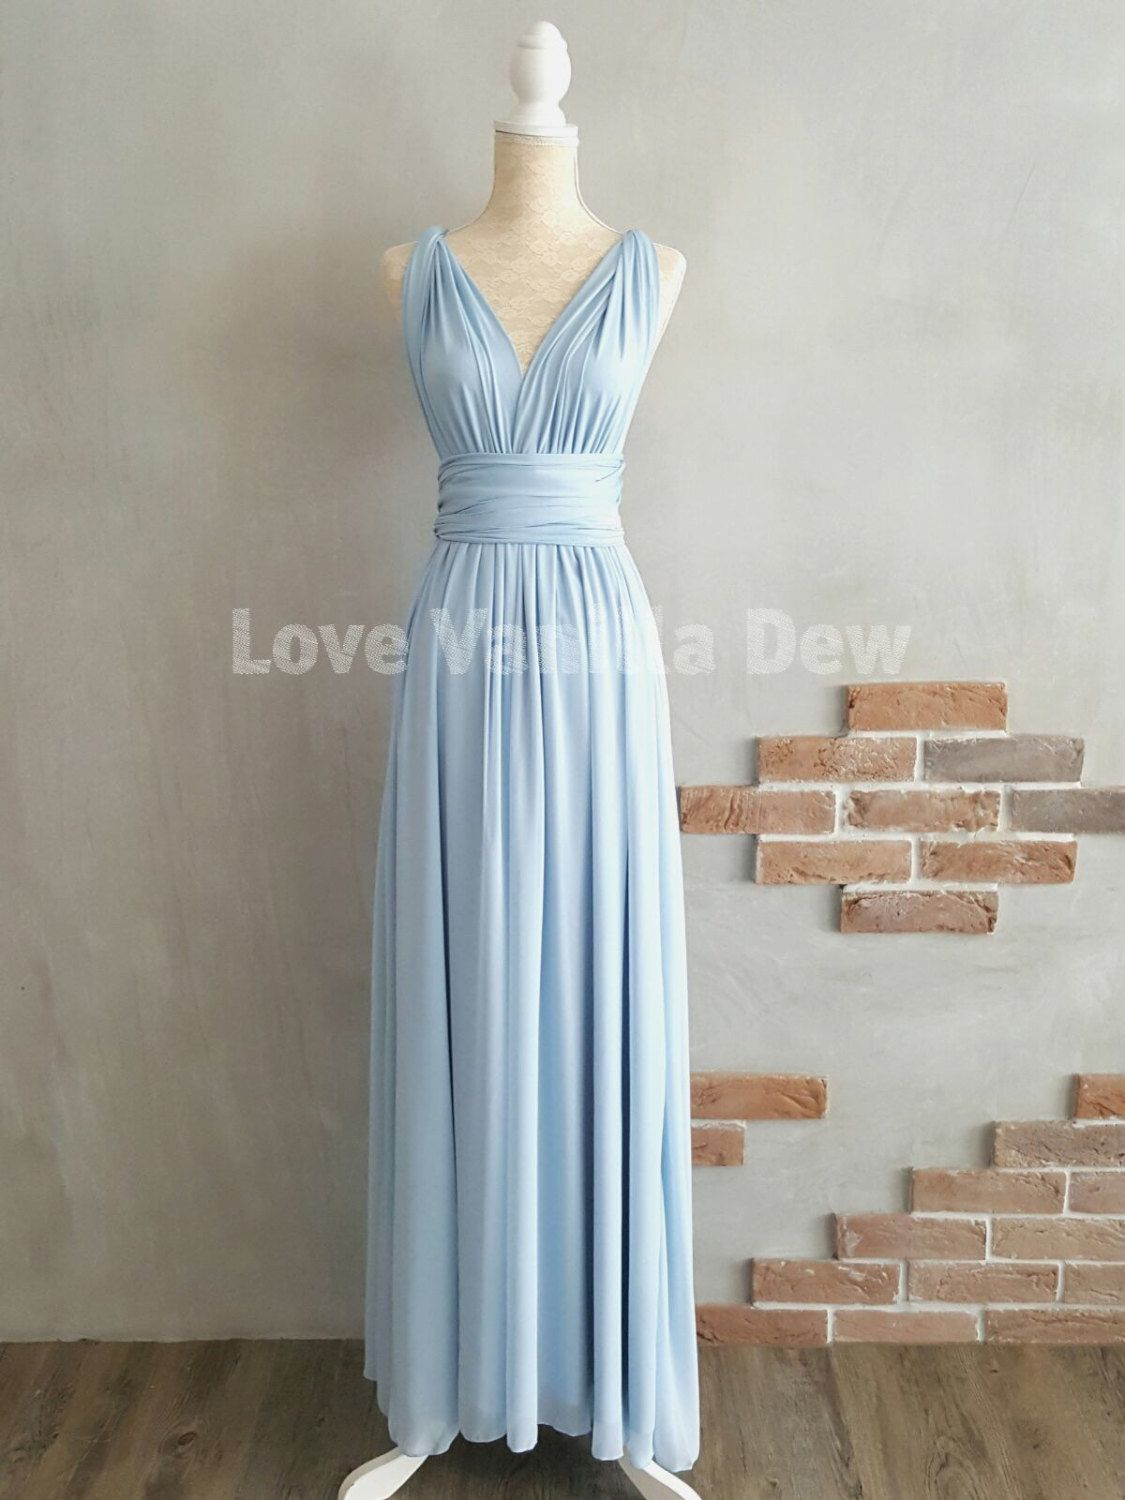 724d74a9e92 Bridesmaid Dress Infinity Dress Powder Blue with Chiffon Overlay ...